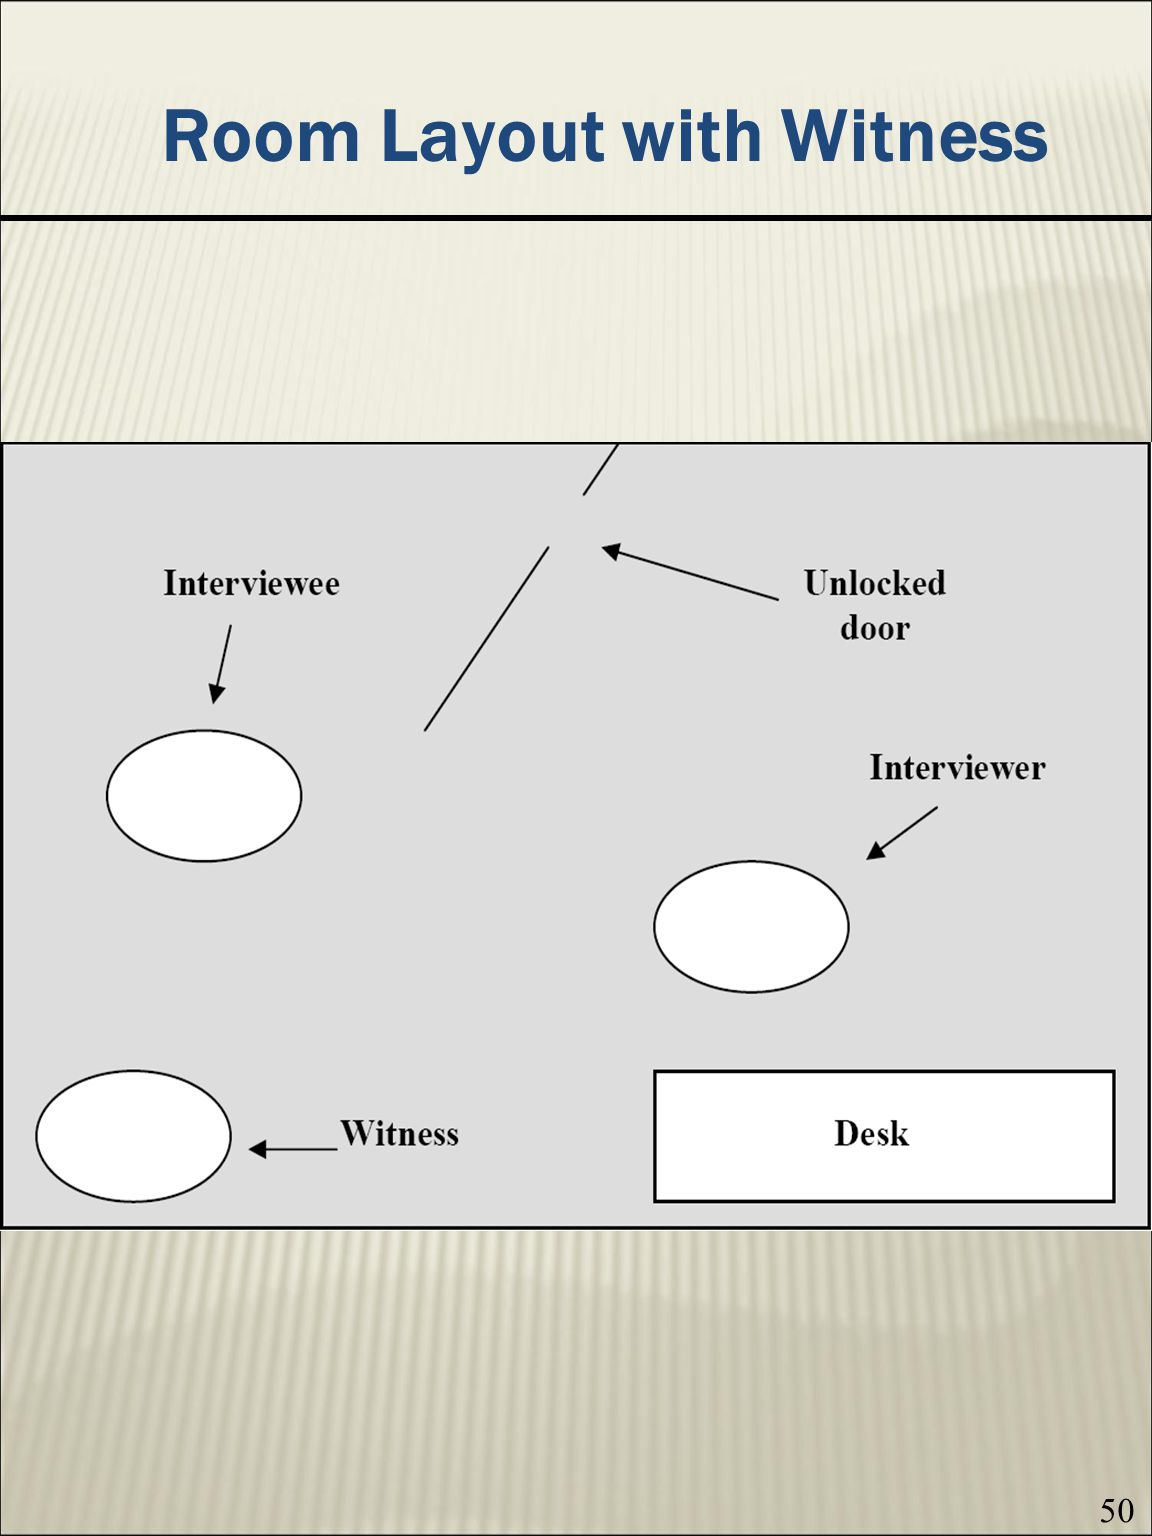 Room Layout with Witness